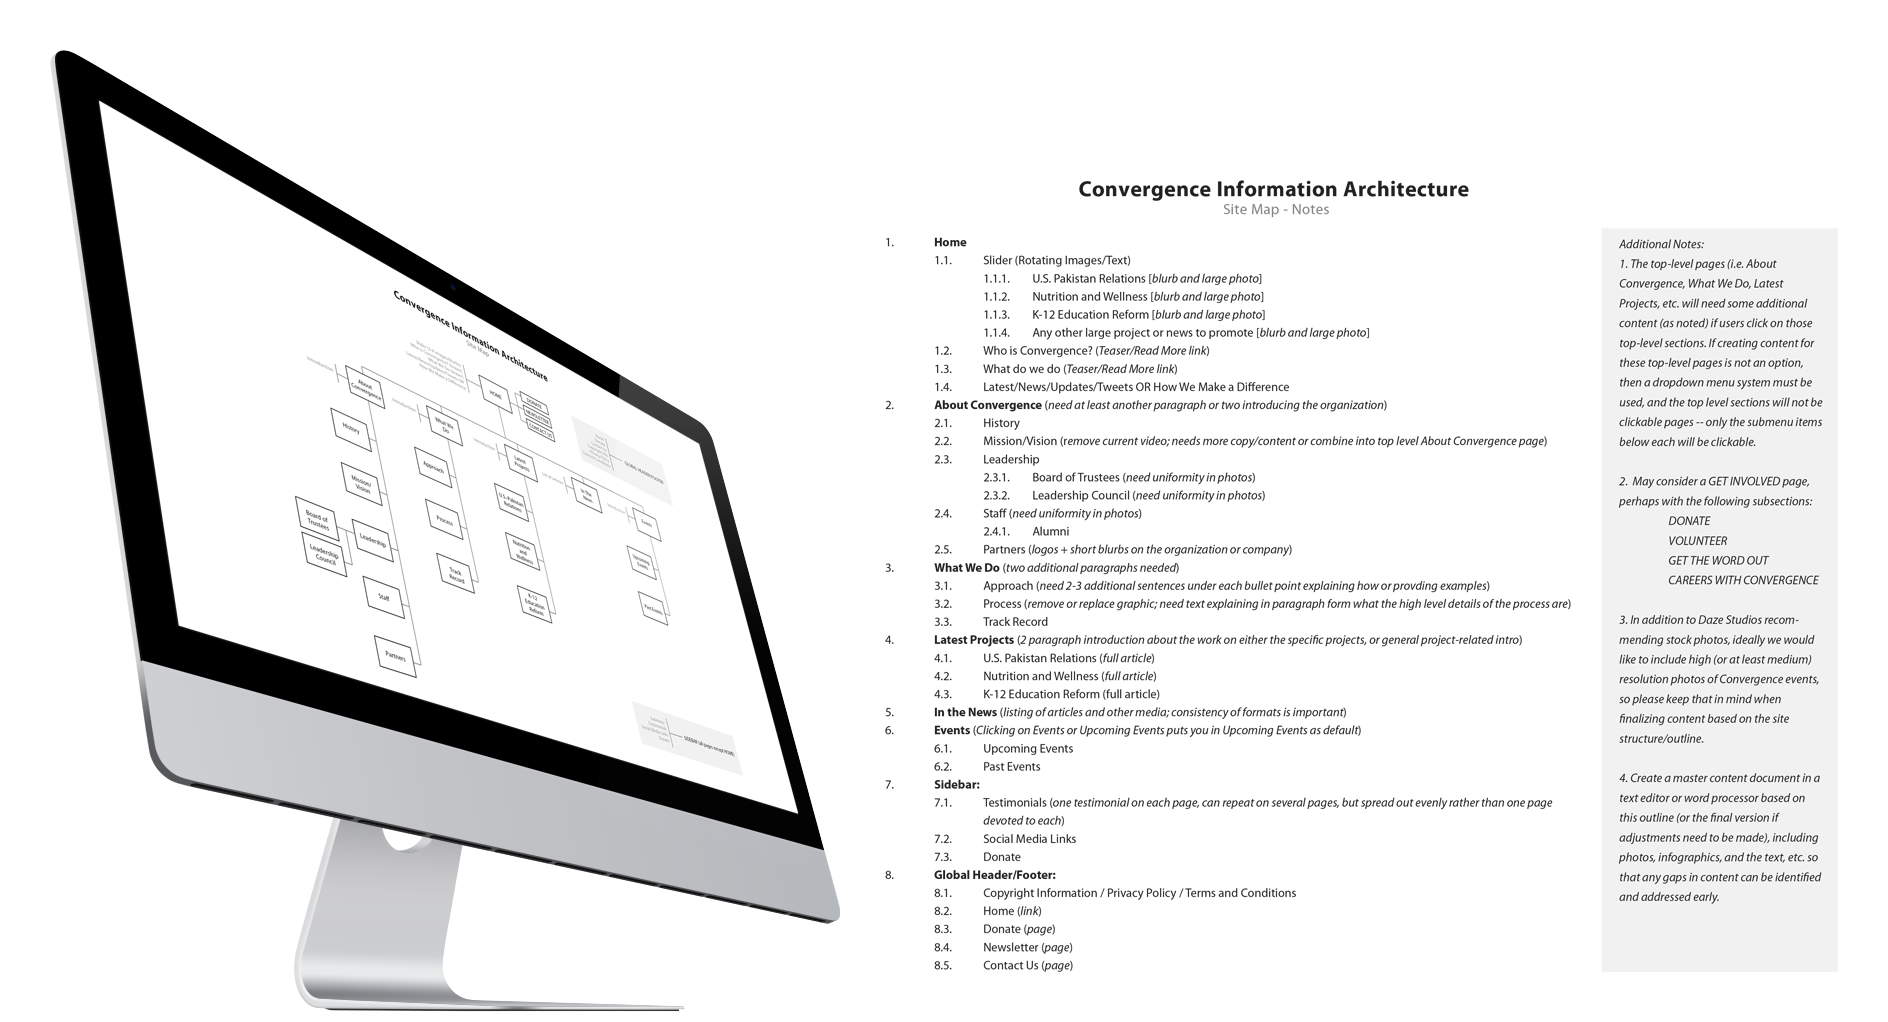 Portfolio Gallery - Convergence site map and information architecture